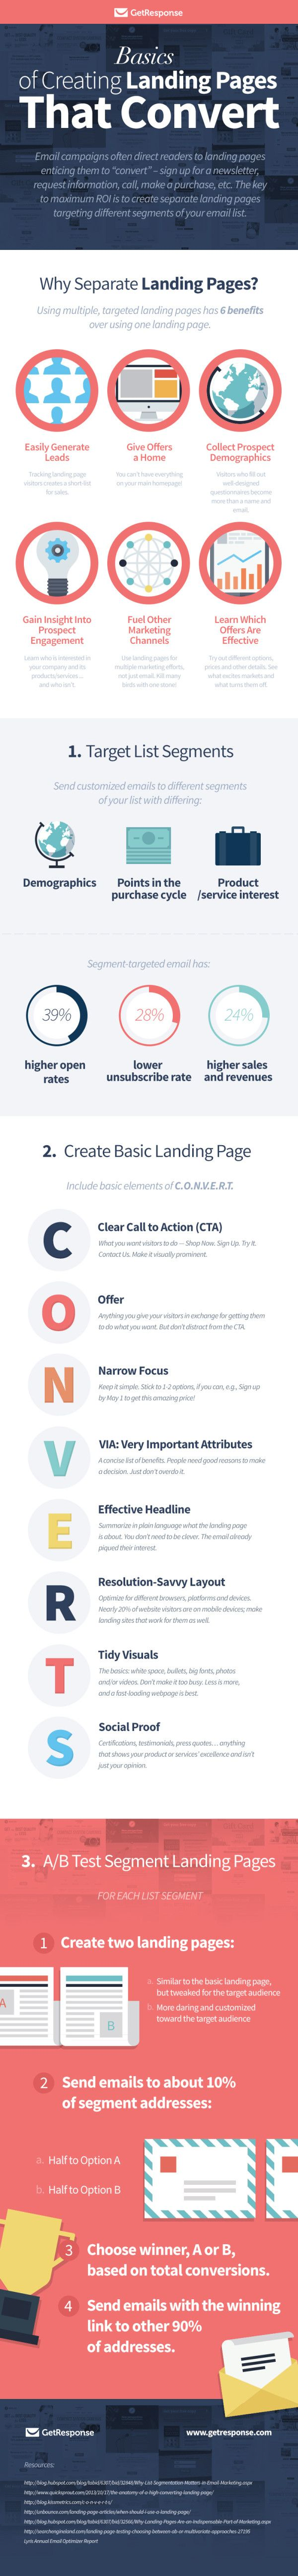 Basics to Creating Landing Pages That Convert